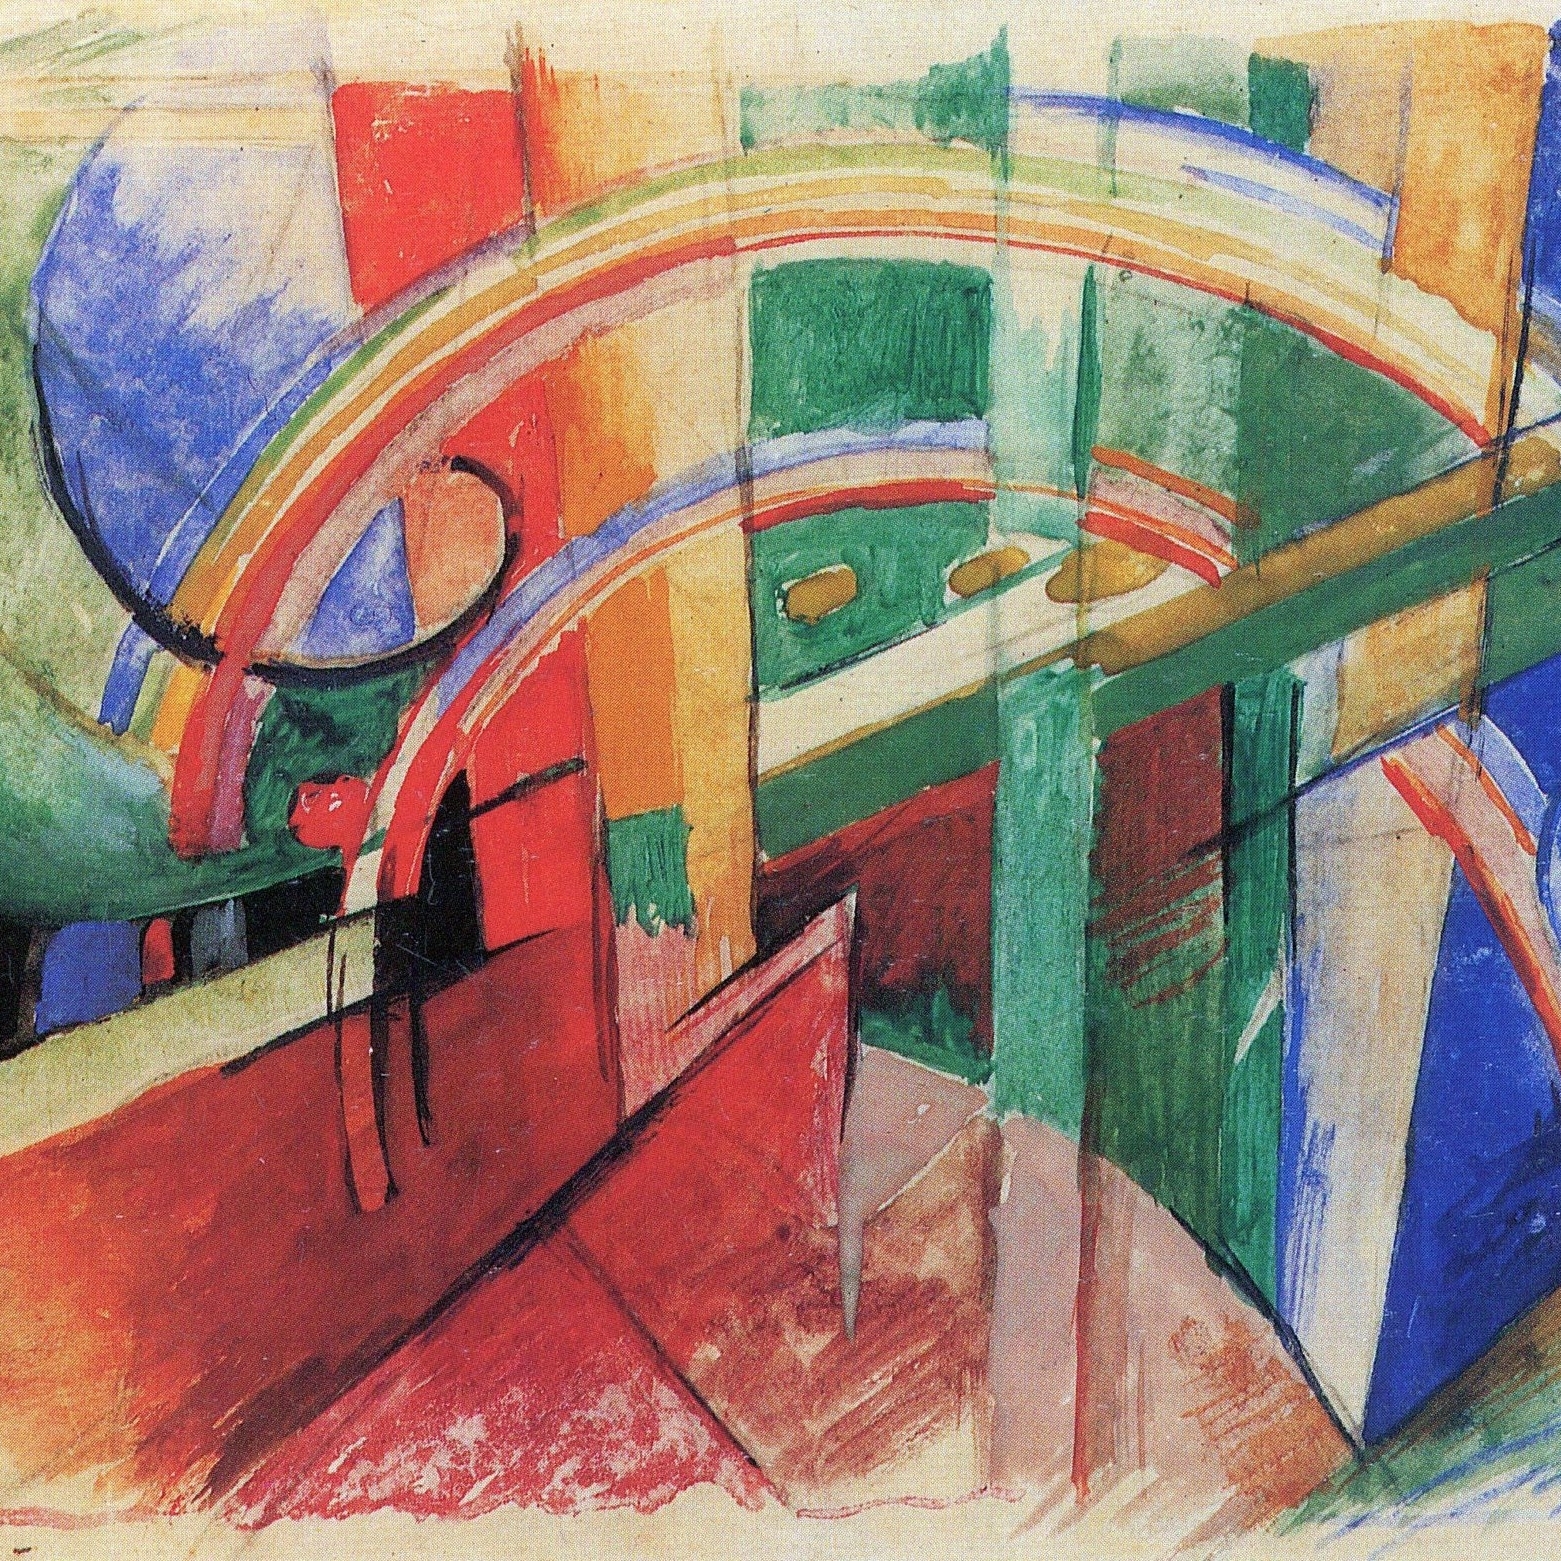 IMAGE CREDIT: Blue Horse with Rainbow , by Franz Marc (1913) [ https://www.moma.org/s/ge/collection_ge/artist/artist_id-3748_role-1_sov_page-16.html ] Licensed under CC0.